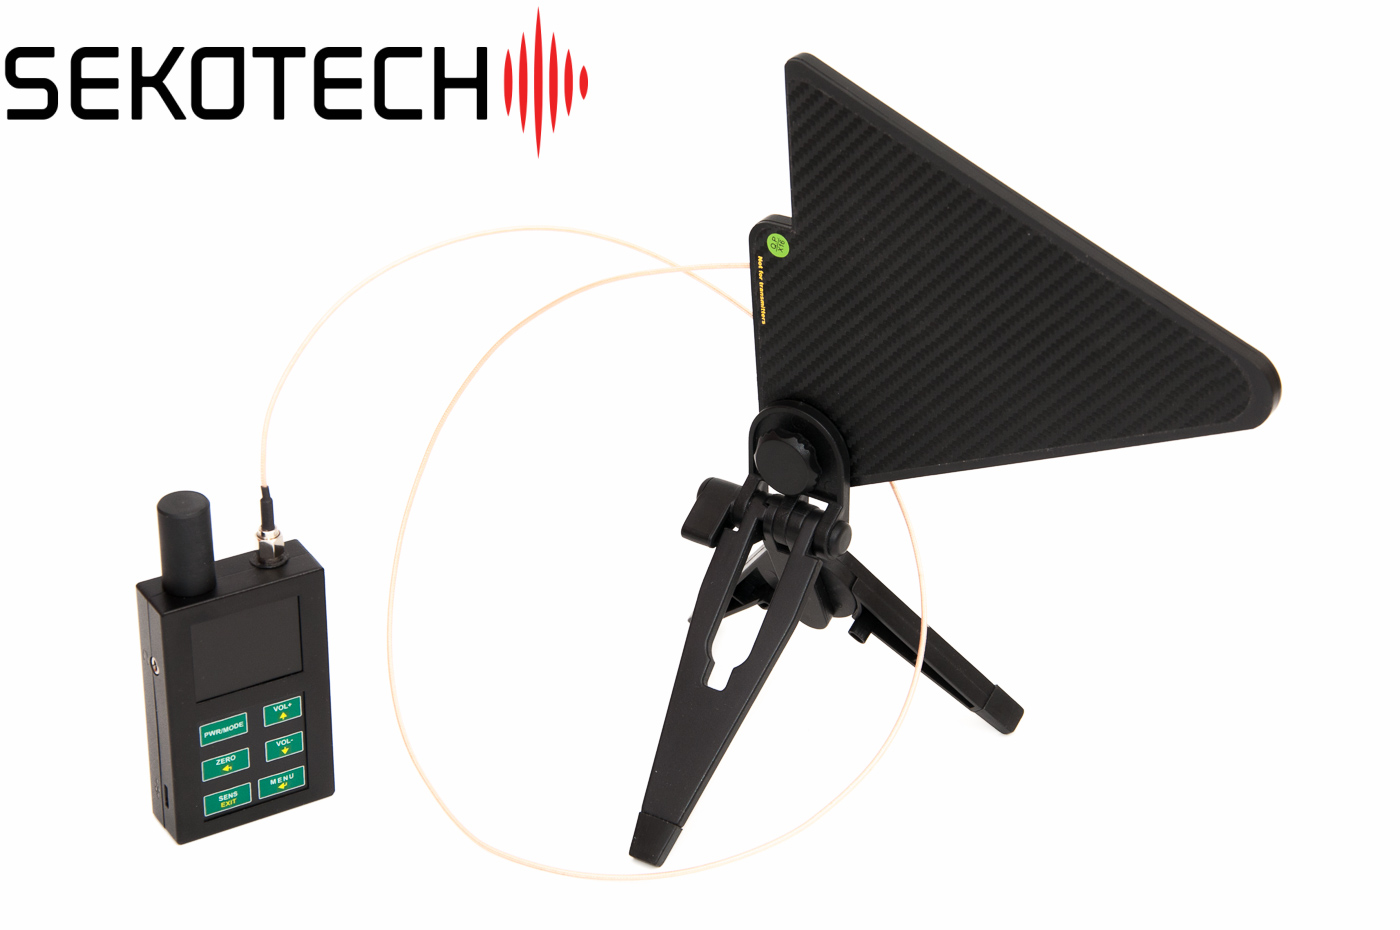 ST-111 RF signal, GPS trackers and bugs detector